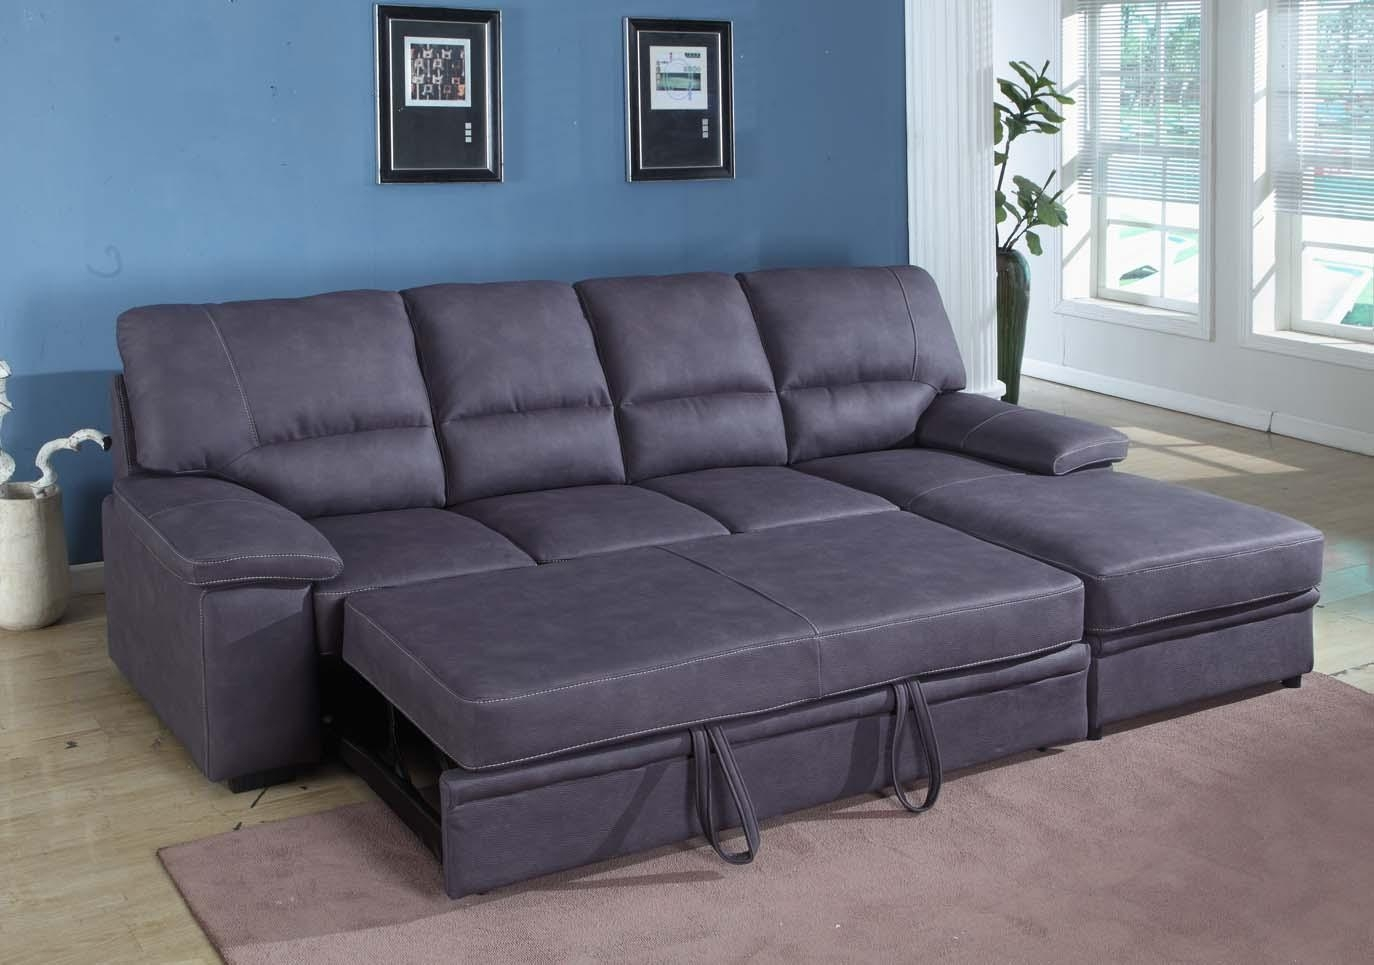 Sectional Sleeper Sofas On Sale – Ansugallery Throughout Sectional Sleepers (View 8 of 20)